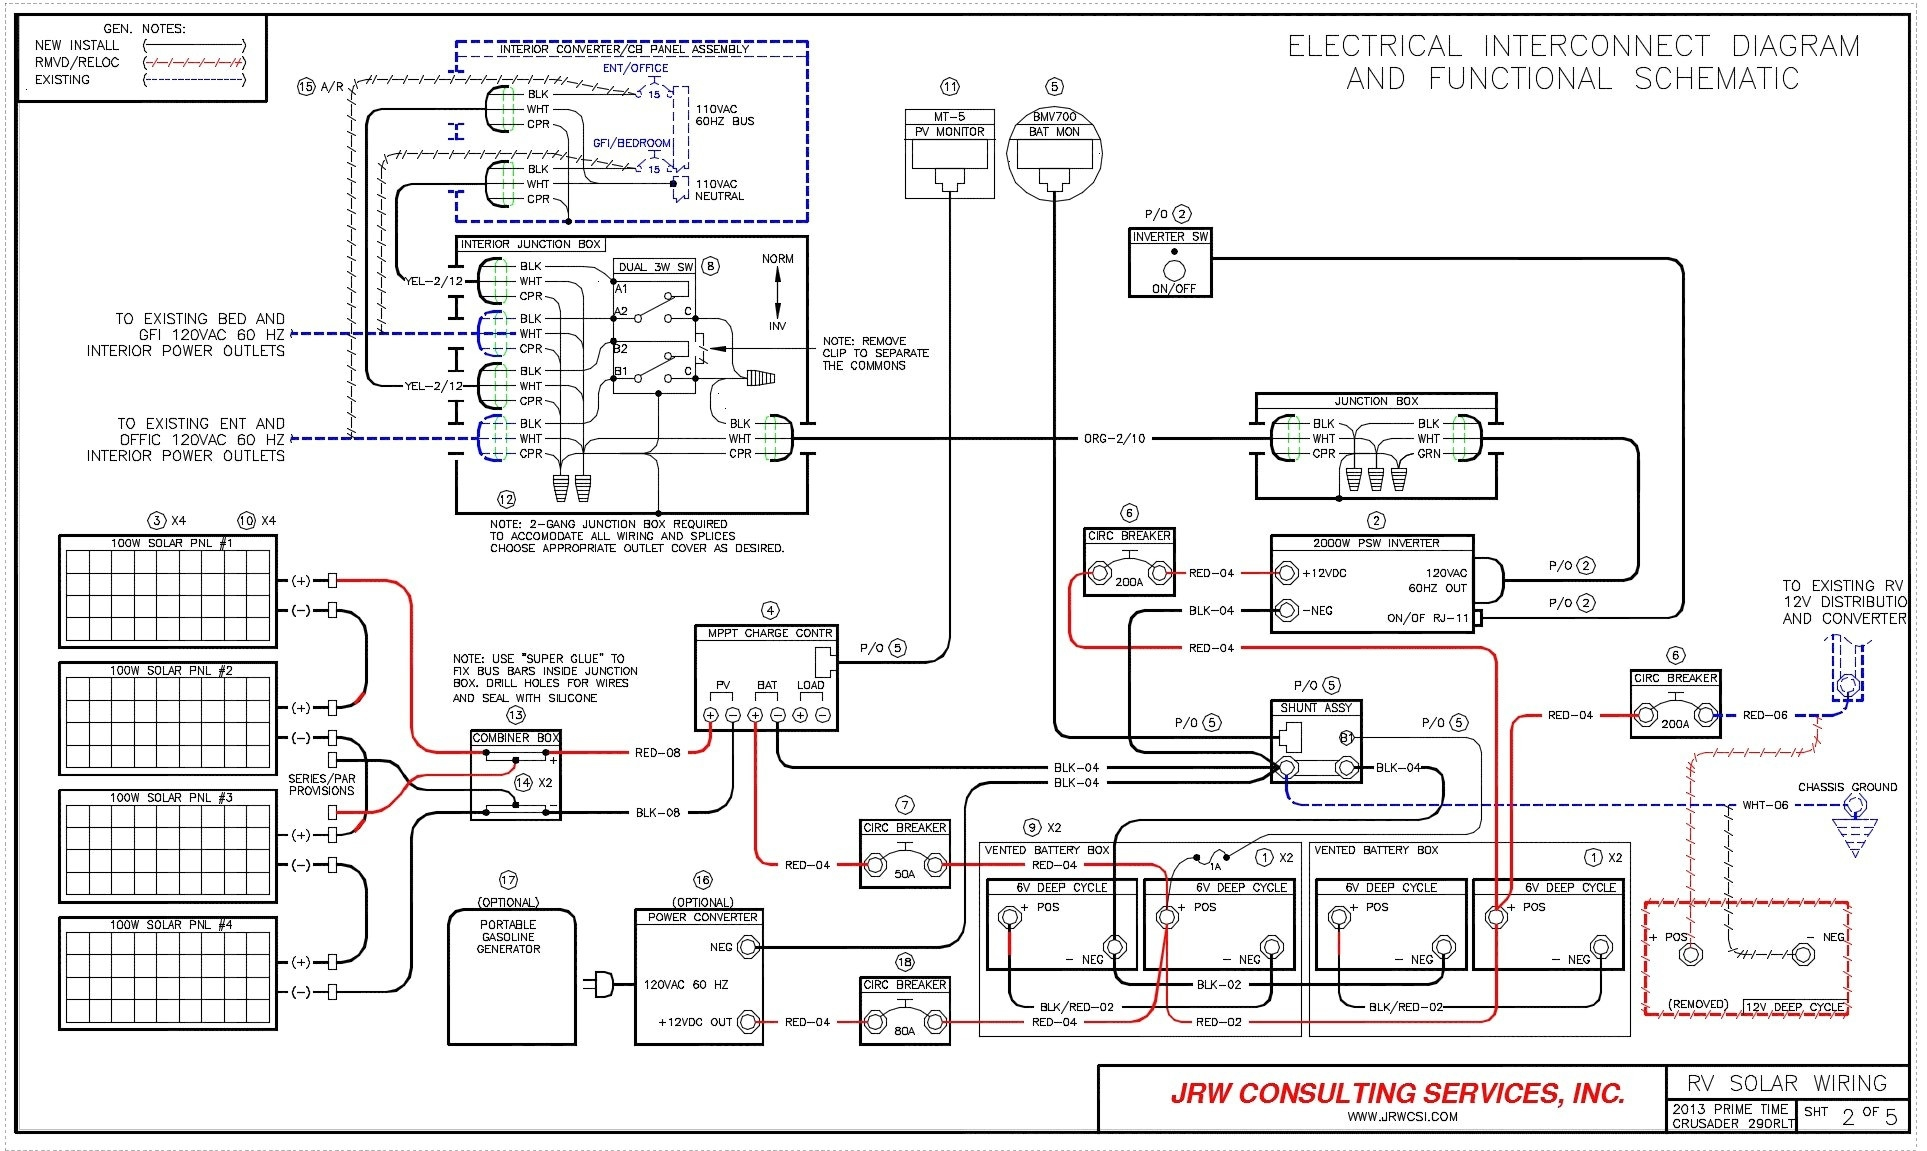 Duo therm Rv Air Conditioner Wiring Diagram | Free Wiring ... on electric heat pump wiring diagram, auto air conditioning wiring diagram, air conditioning unit system diagram, residential air conditioner service, residential air conditioner compressor, carrier heat pump wiring diagram, central air conditioning system diagram, residential air conditioning system diagram, ac fan motor wiring diagram, residential electrical wiring diagrams, split system ac wiring diagram, residential air conditioner capacitor, ac capacitor wiring diagram,